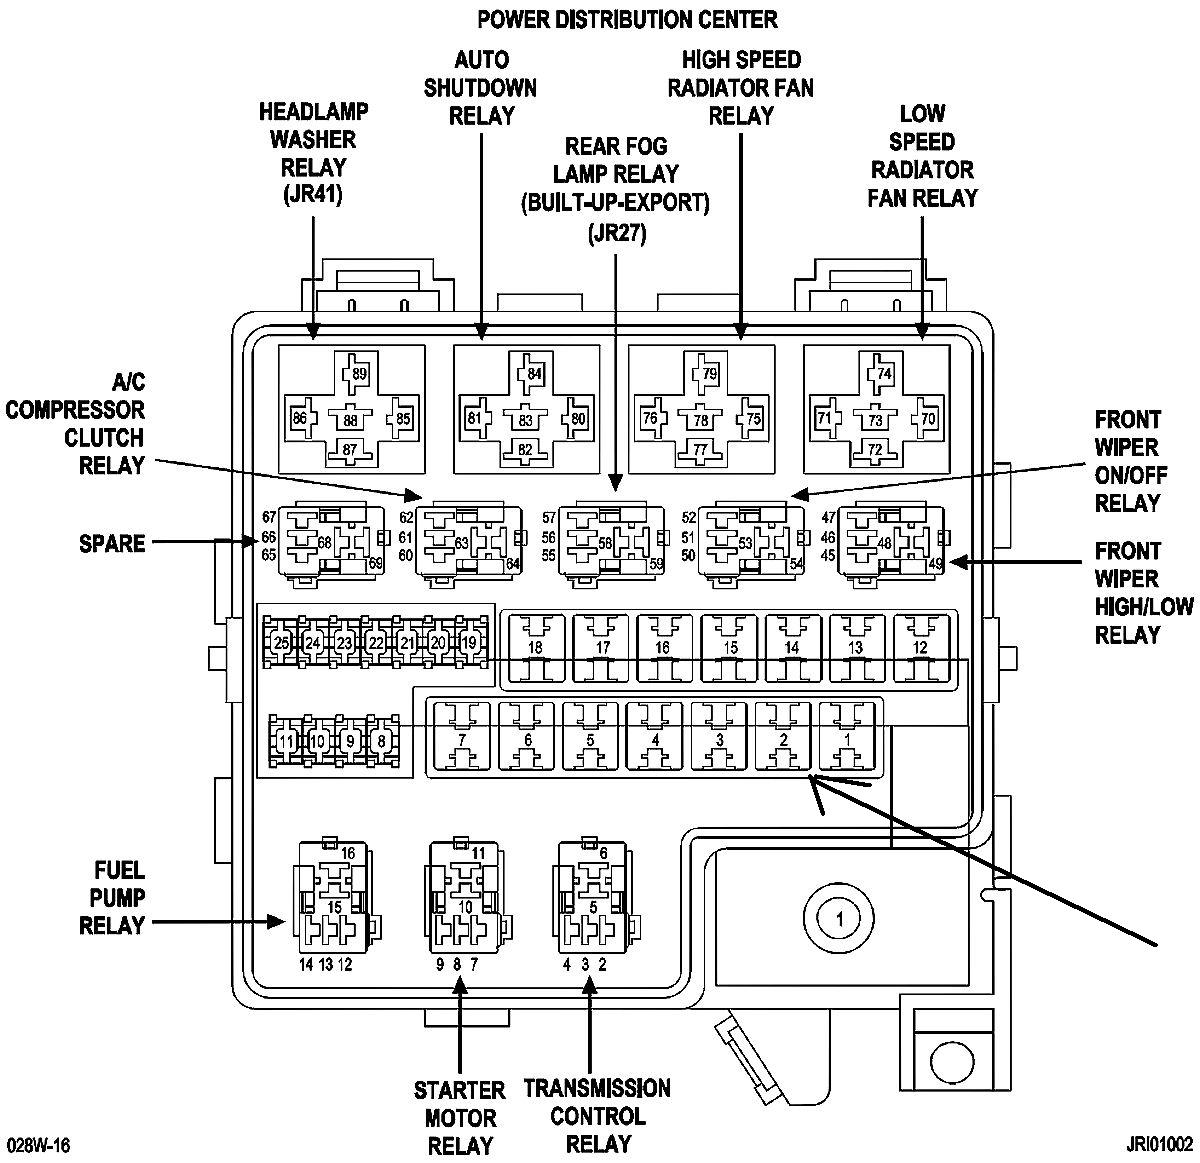 2004 chrysler sebring under hood fuse box diagram